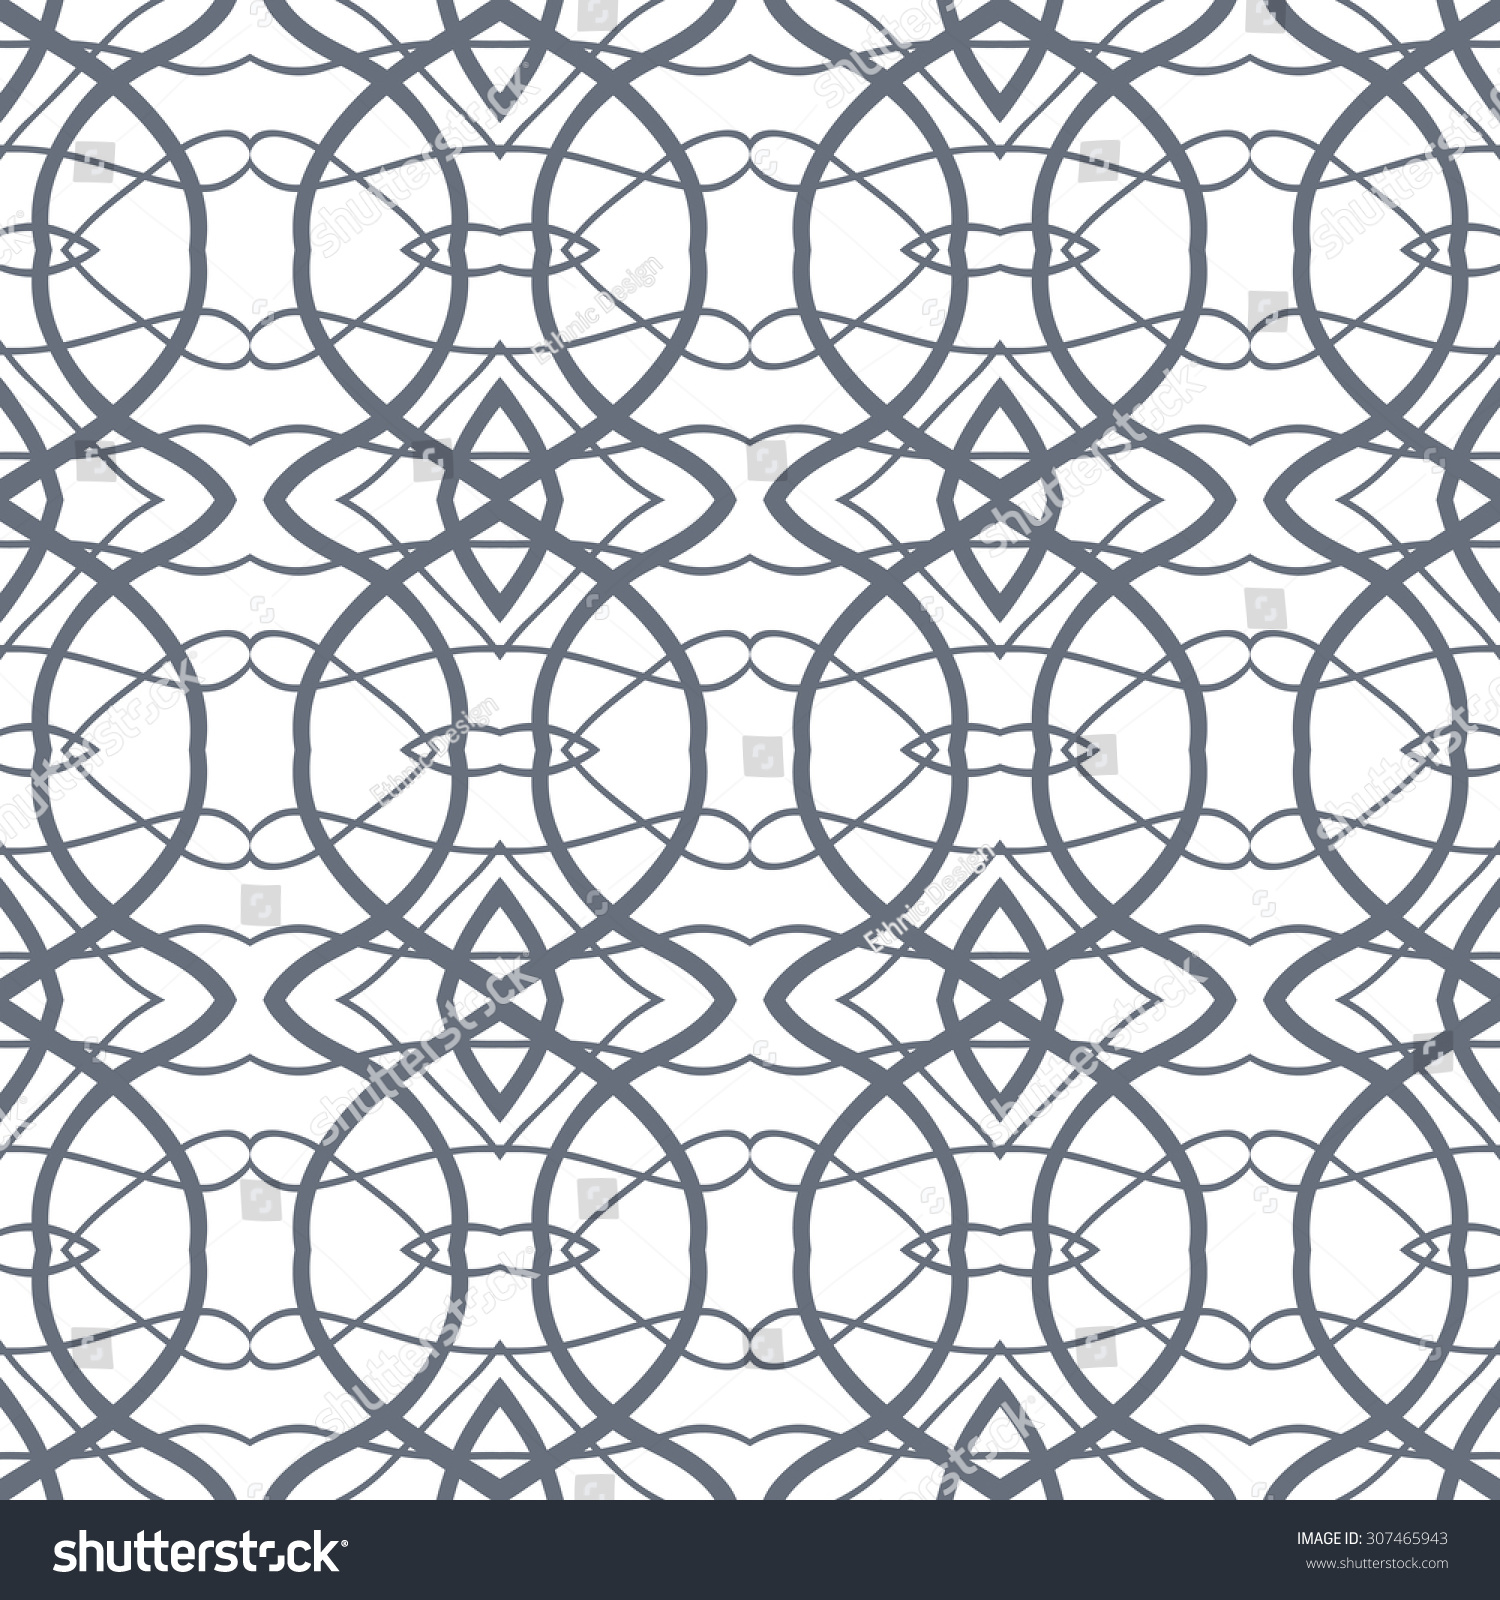 Vector Seamless Pattern Repeating Geometric Mesh Stock Vector ... for Modern Arabic Pattern Vector  45ifm